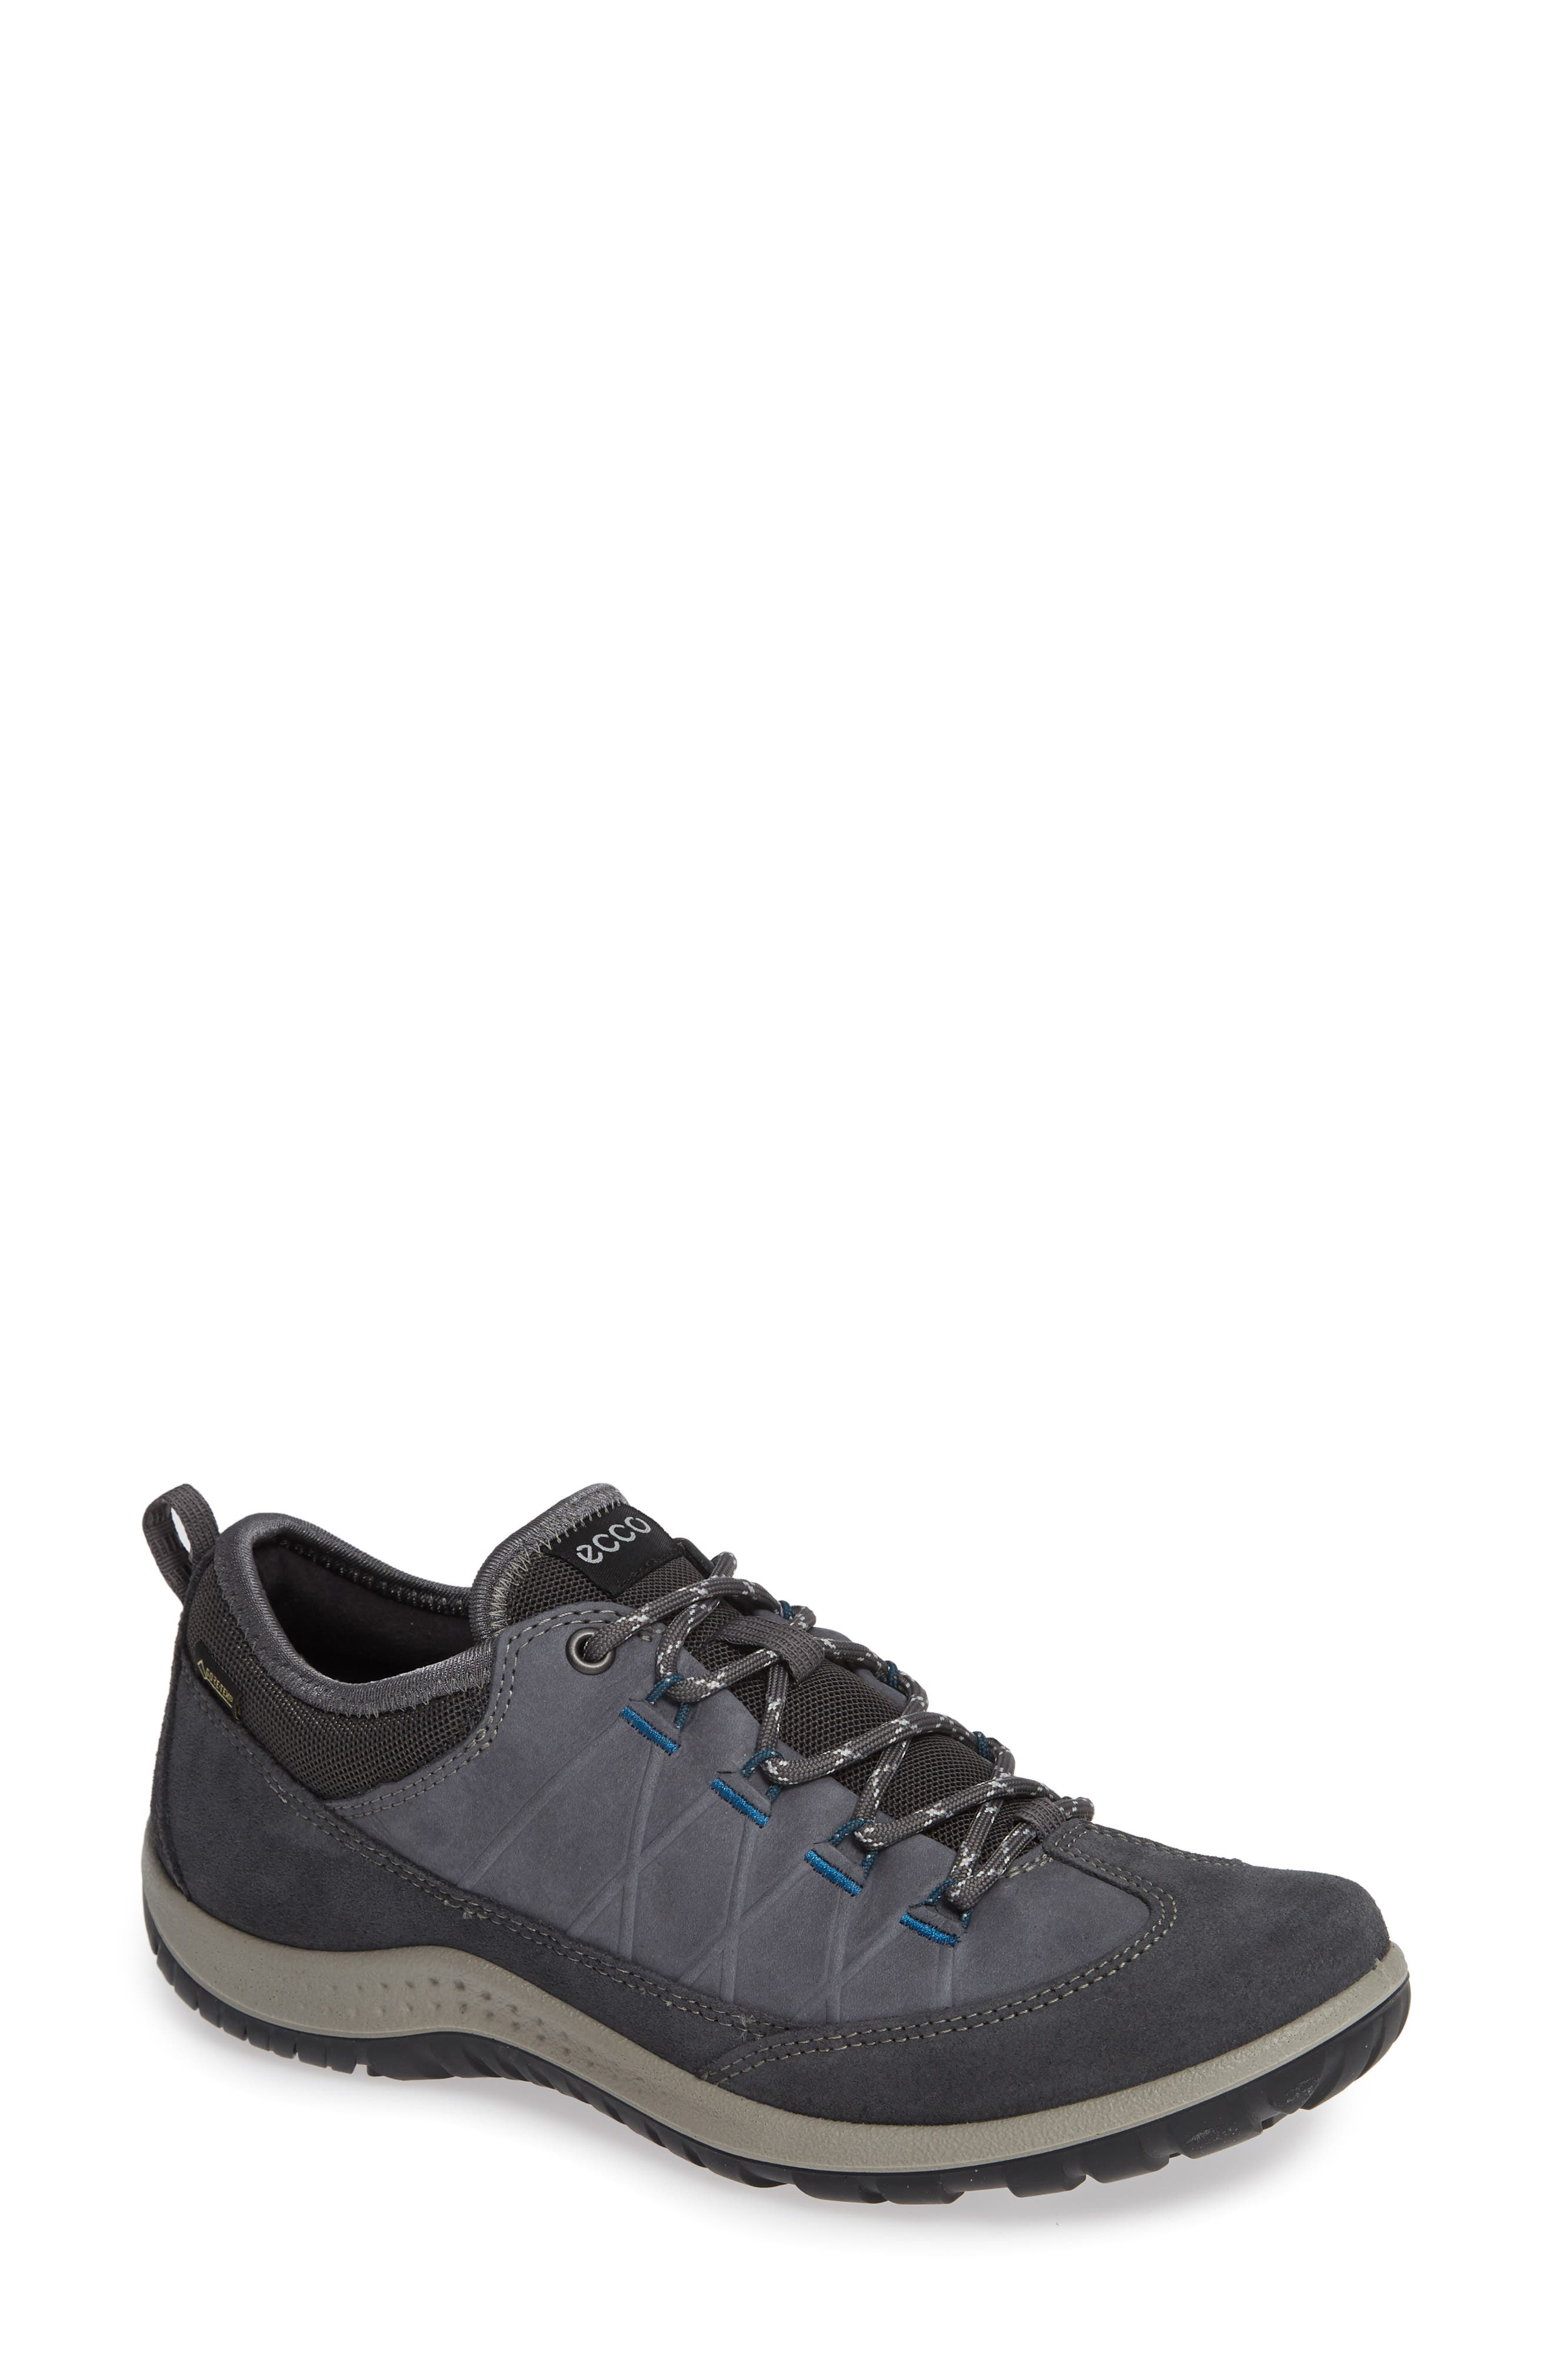 'Aspina GTX' Waterproof Sneaker,                         Main,                         color, Magnet Nubuck Leather